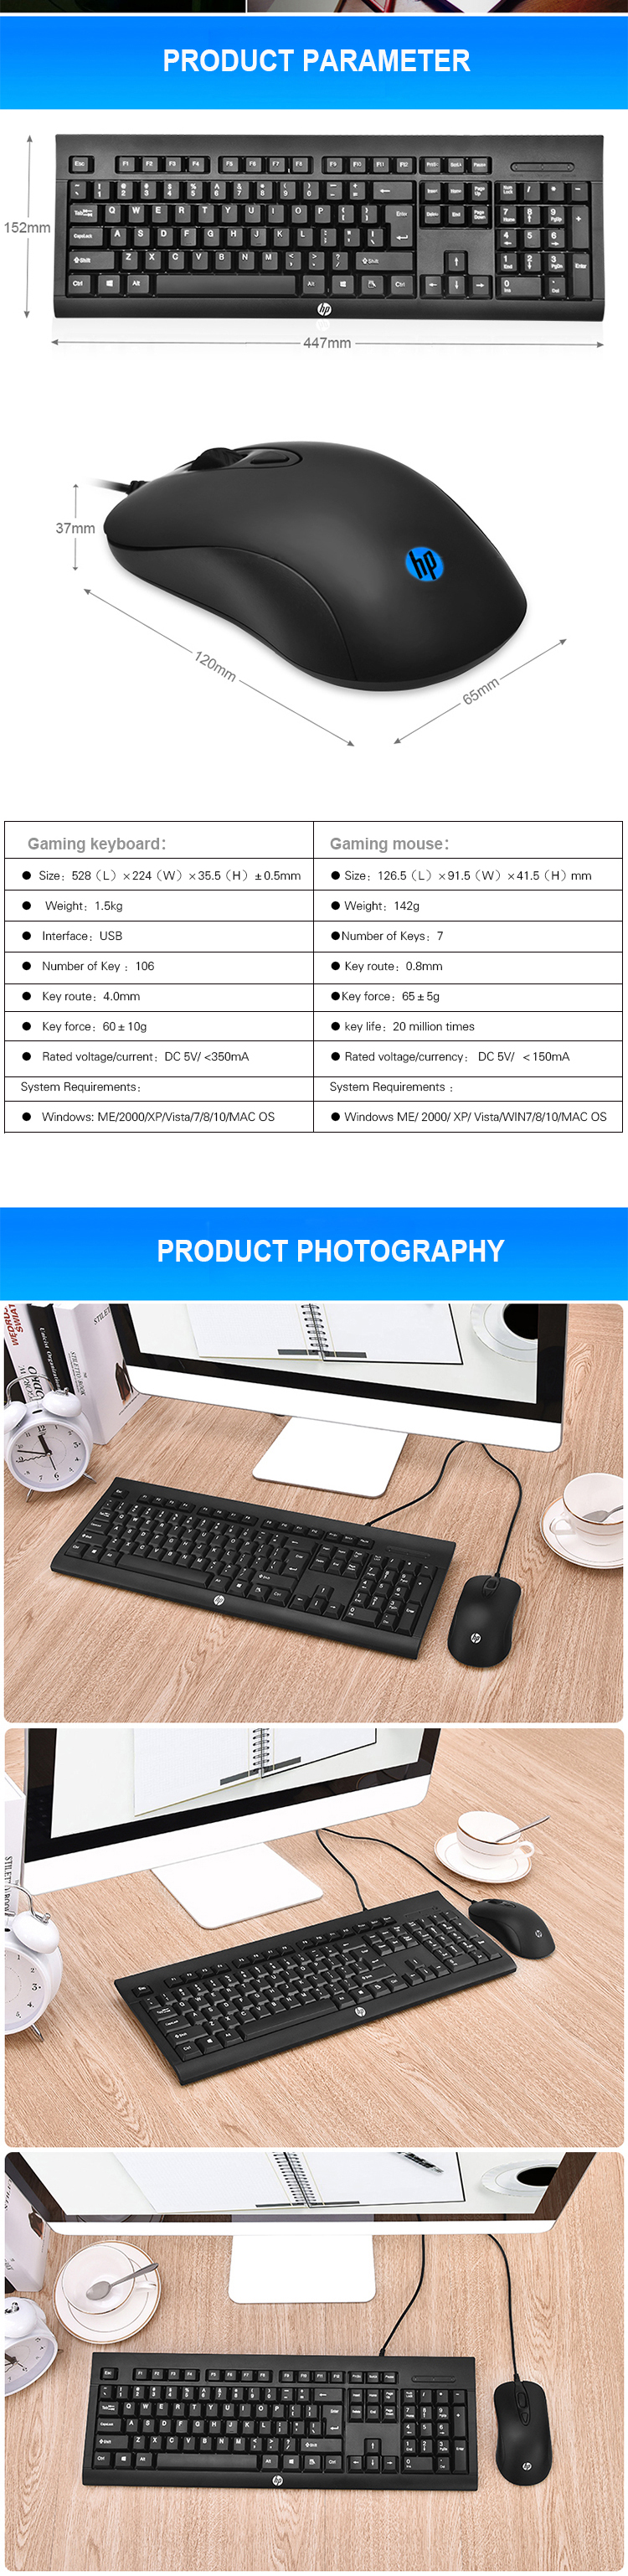 HP® km100 USB Wired 104 Keys Membrane Keyboard And 1600dpi Mouse Set Water-proof For Office Gaming